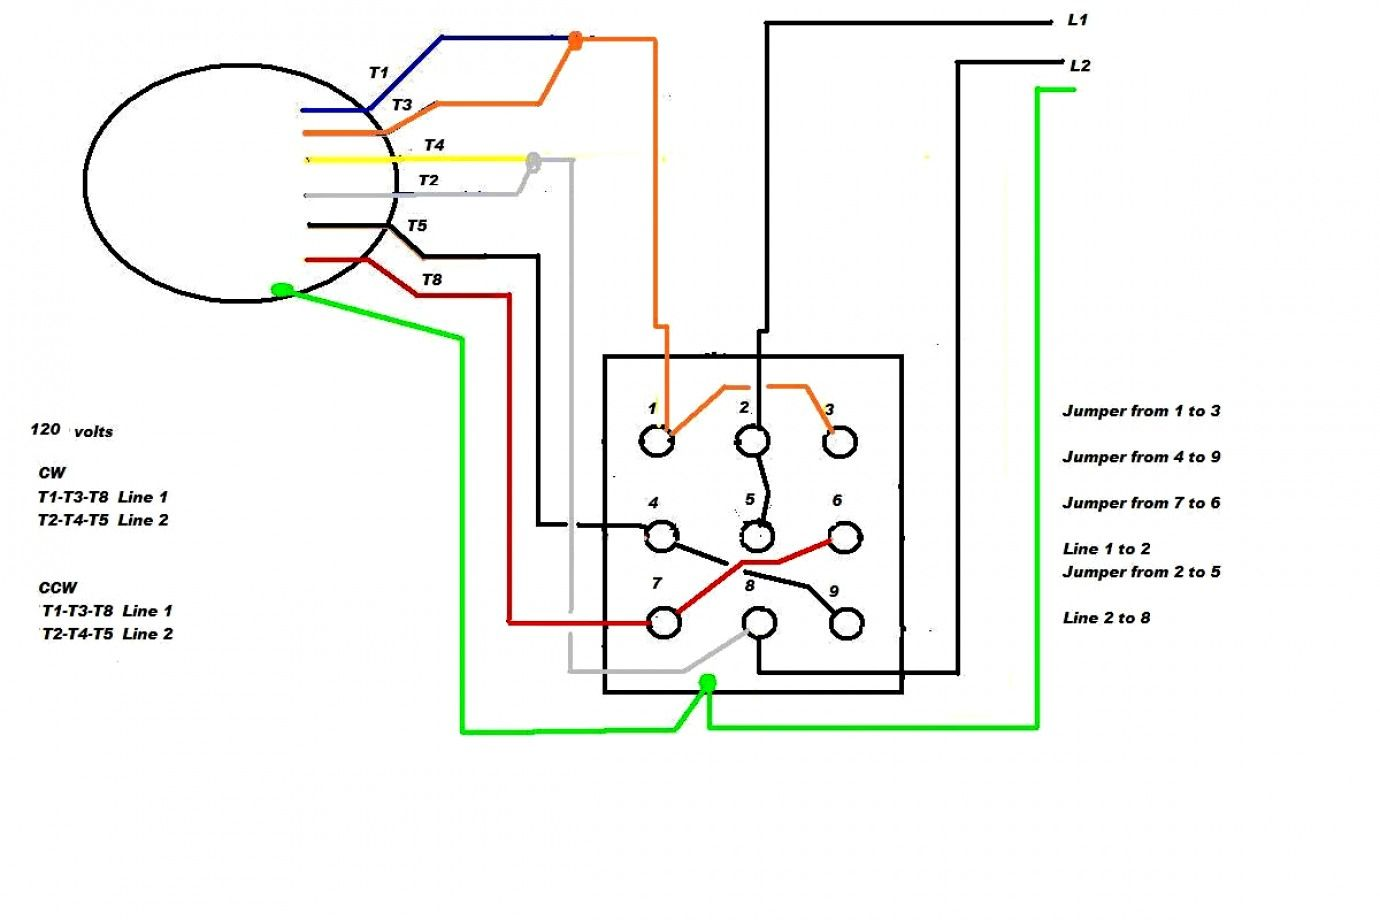 small resolution of single phase wiring diagram for house wiring diagram diagram marathon electric 3 phase wiring diagram